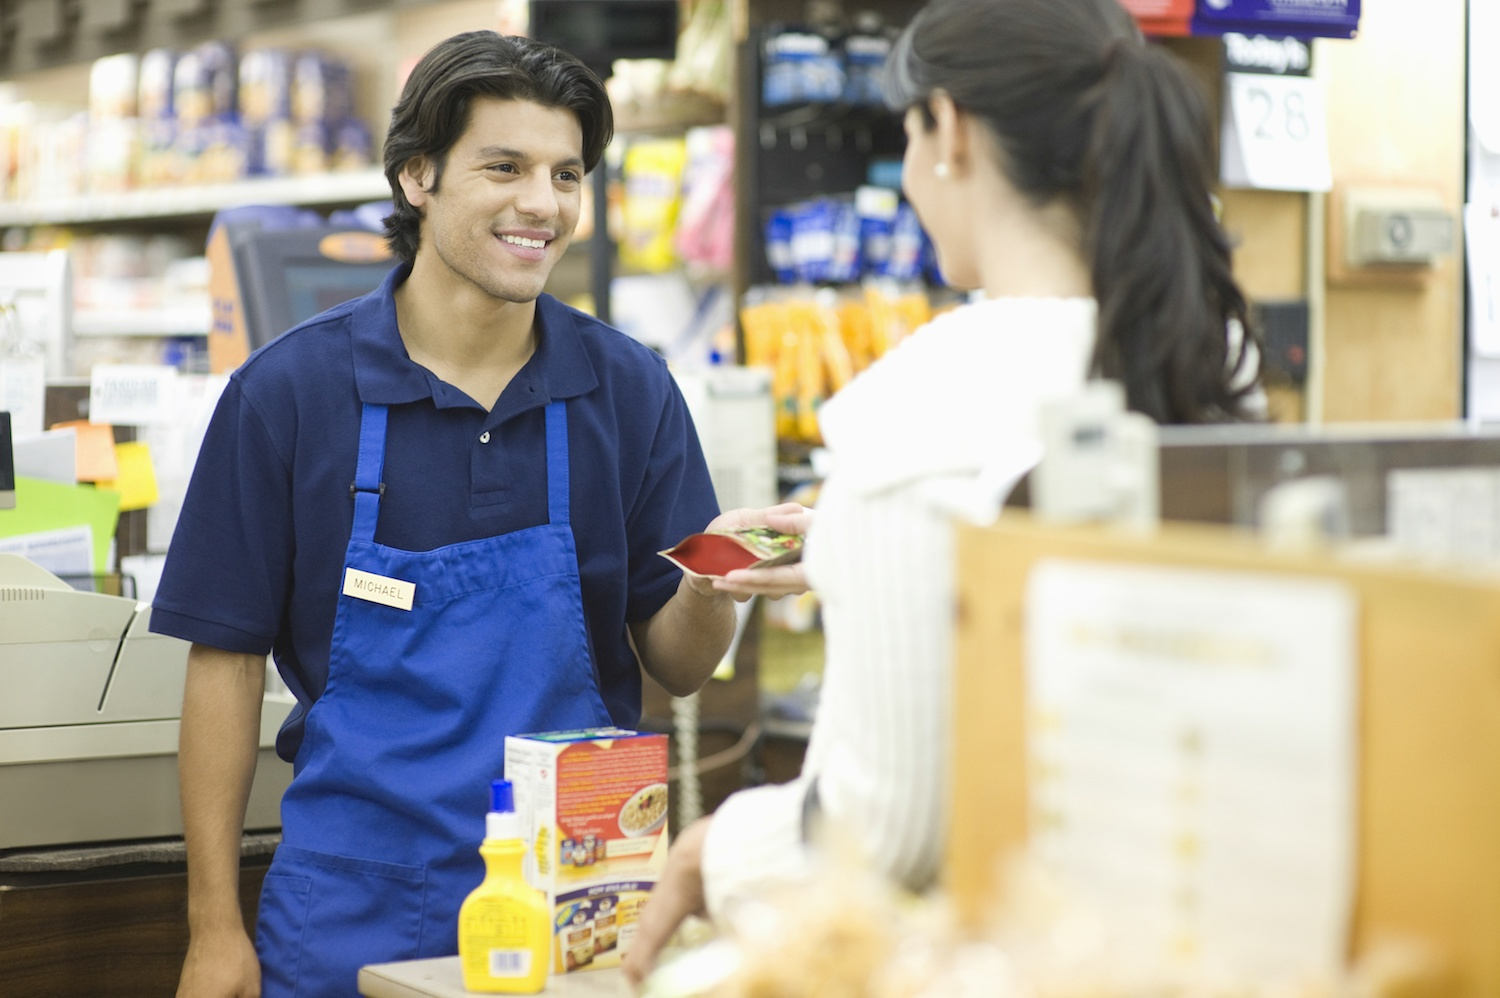 6 things retail employees are trying to tell you